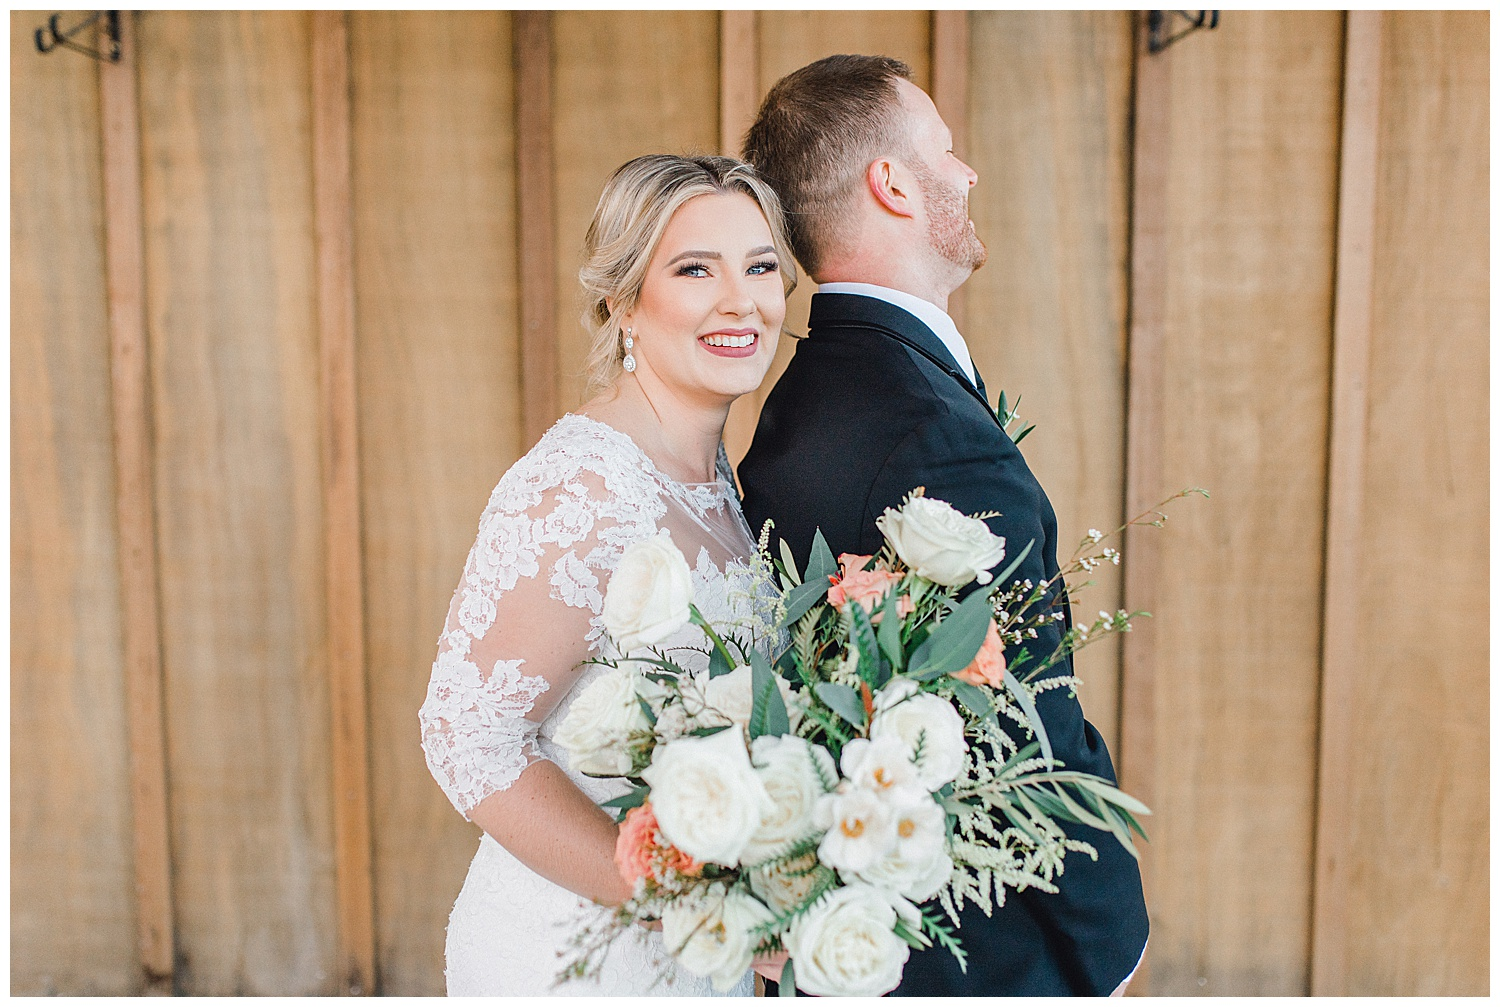 ERC-7059_A beautiful winter wedding in Snohomish, Washington at Thomas Family Farm was simply perfect.  This rustic and modern styled wedding was dripping with romance and photographed by Emma Rose Company, a pacific northwest wedding photographer..jpg